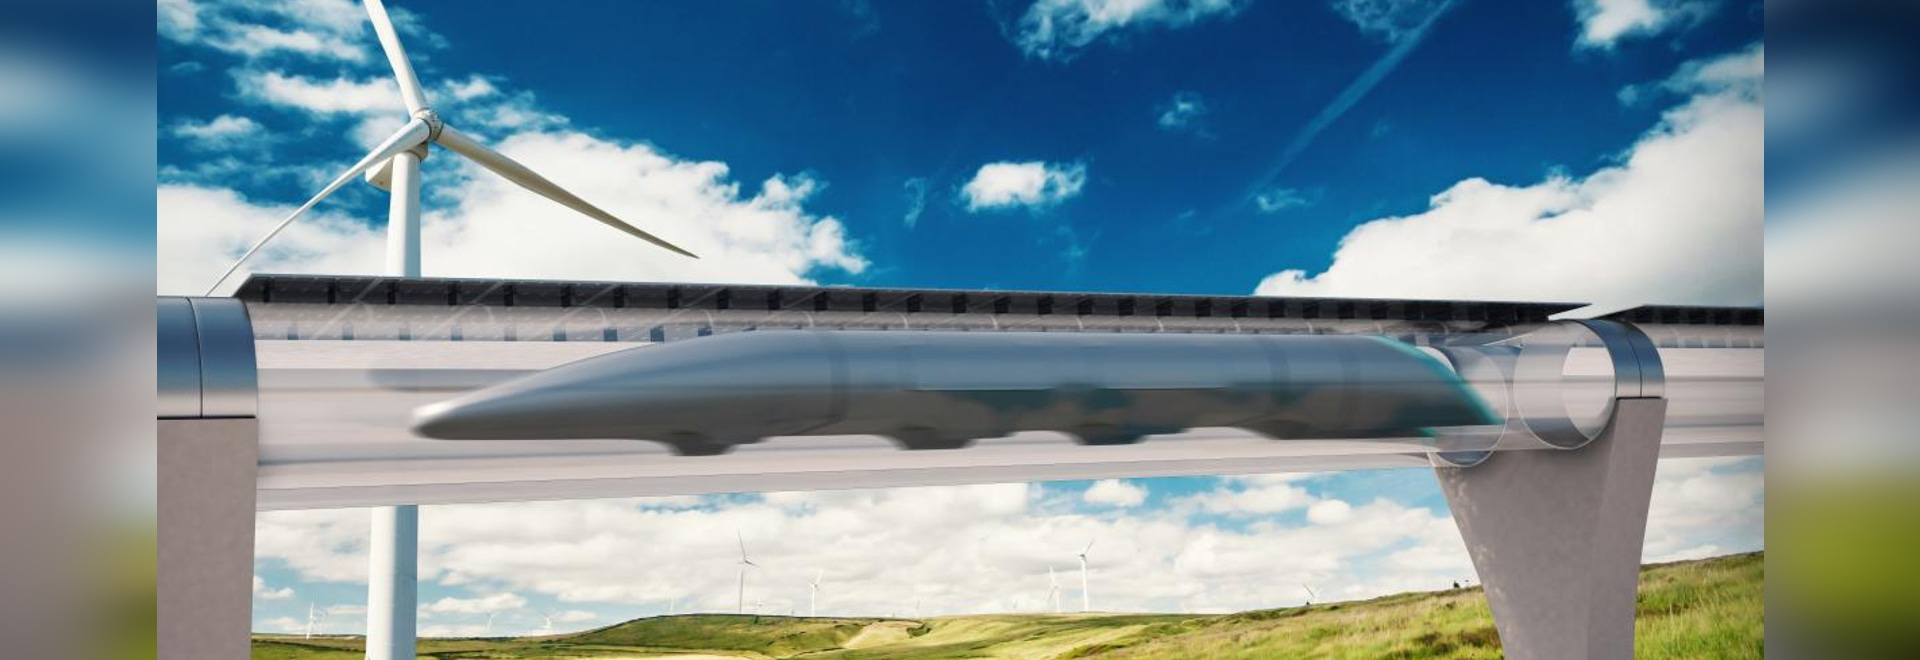 Hyperloop: Traveling at the Speed of Sound